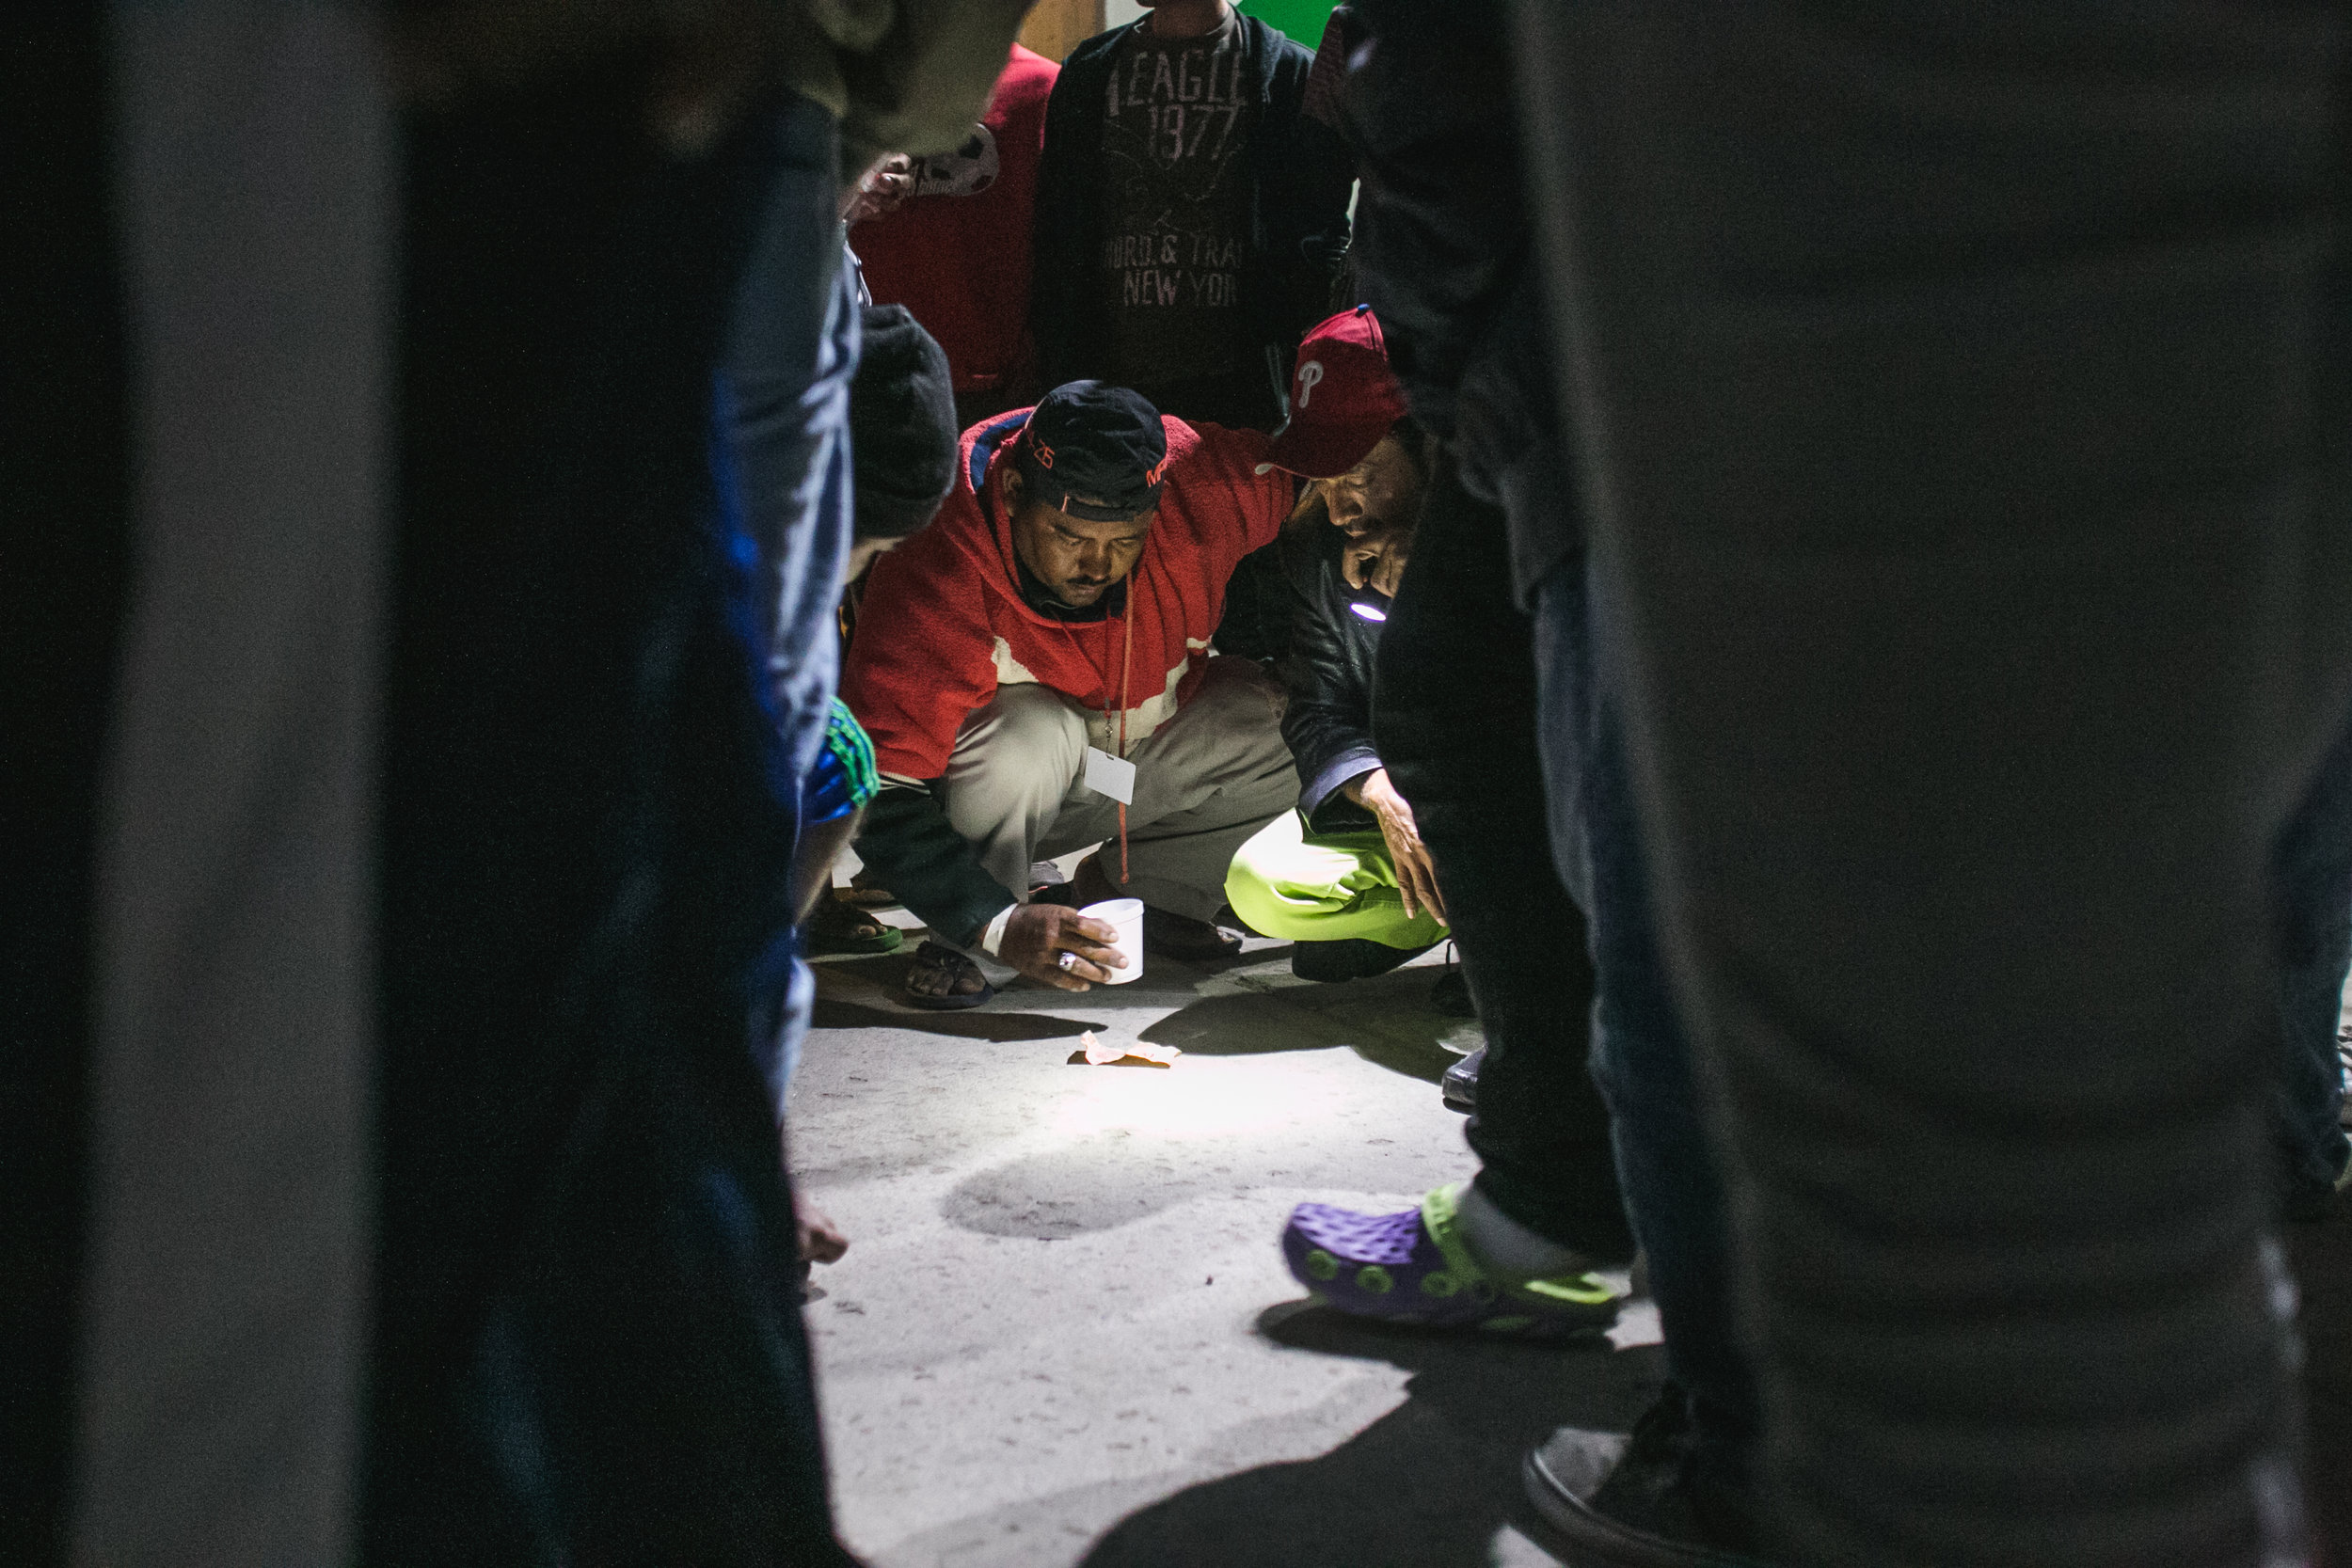 Men gamble with dice on the ground of the Barretal refugee compound located just outside Tijuana, Mexico. Gambling, soccer, and card games are among the most popular activities to pass the time.